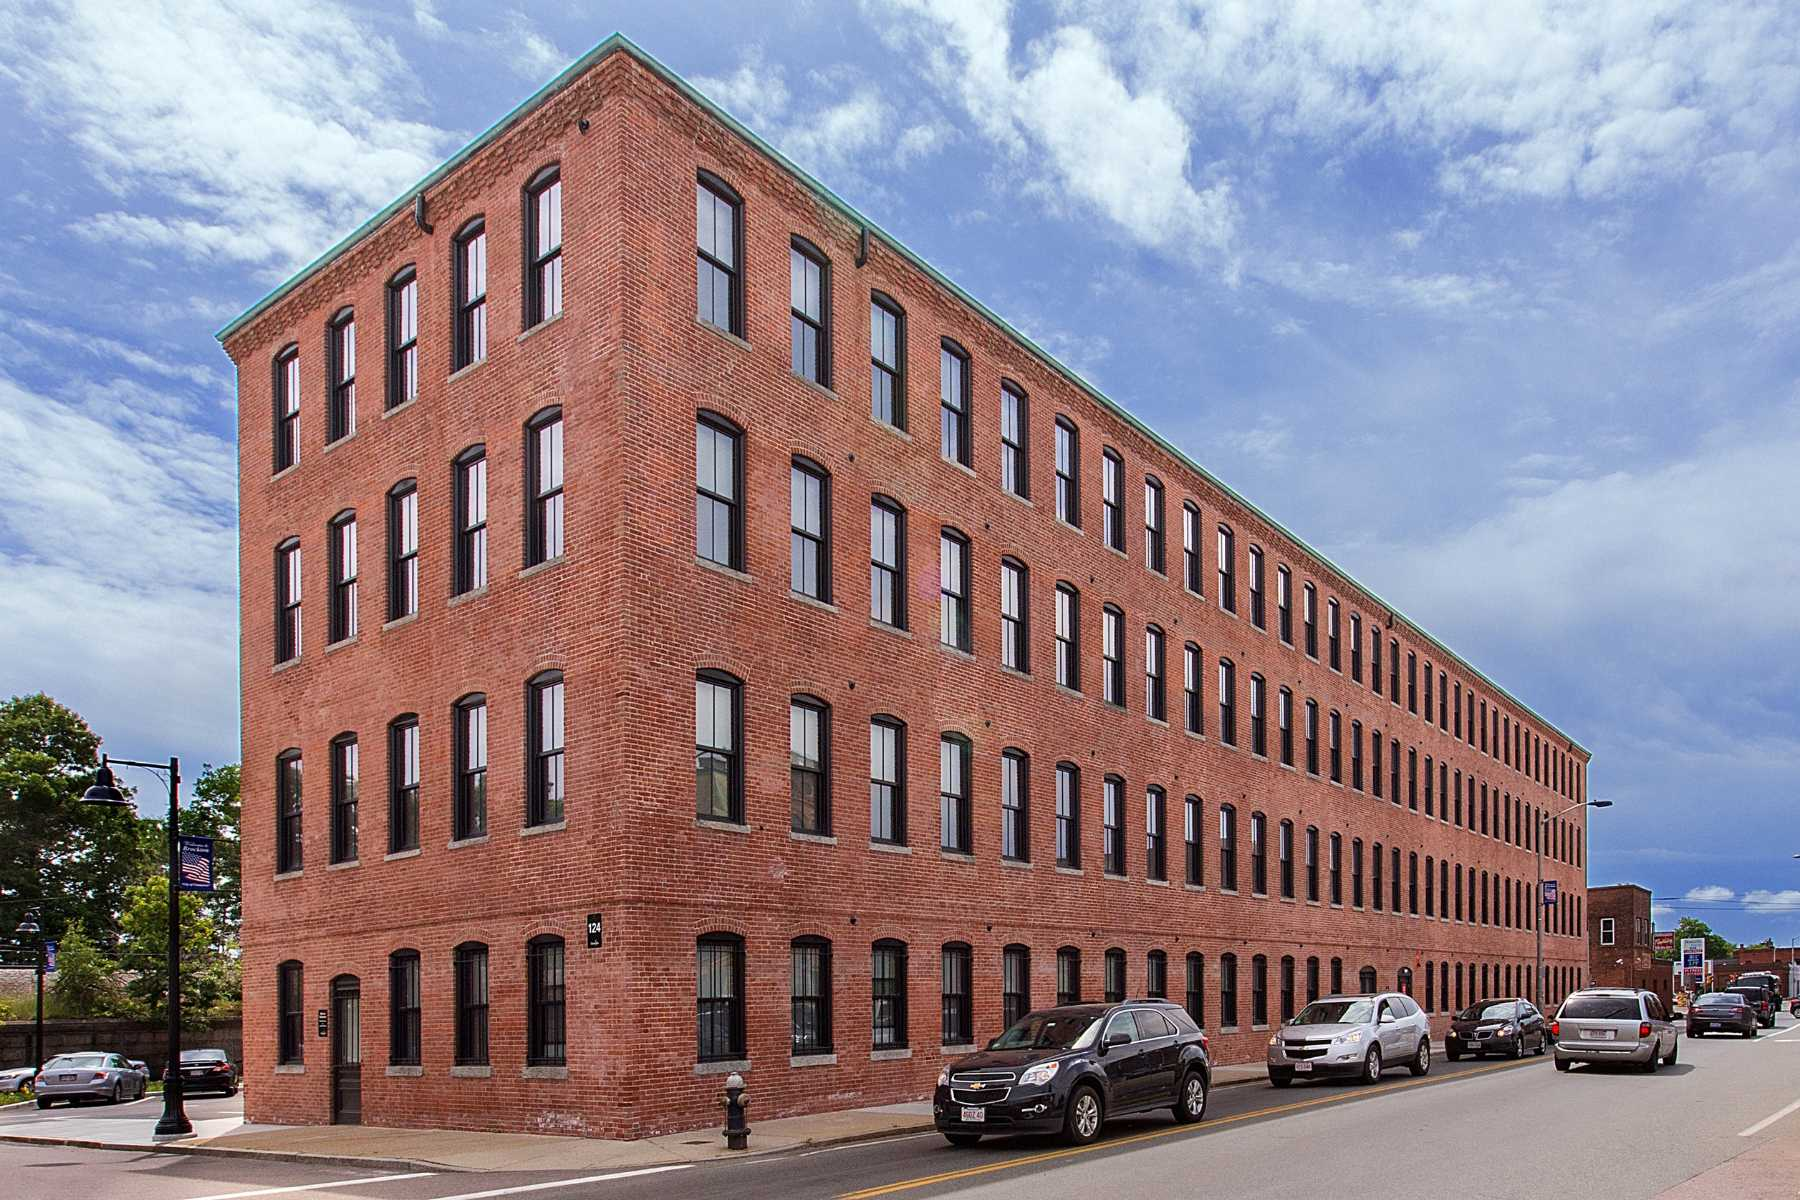 Station Lofts - 25 Mixed-Income Apartment Homes in Brockton, MA